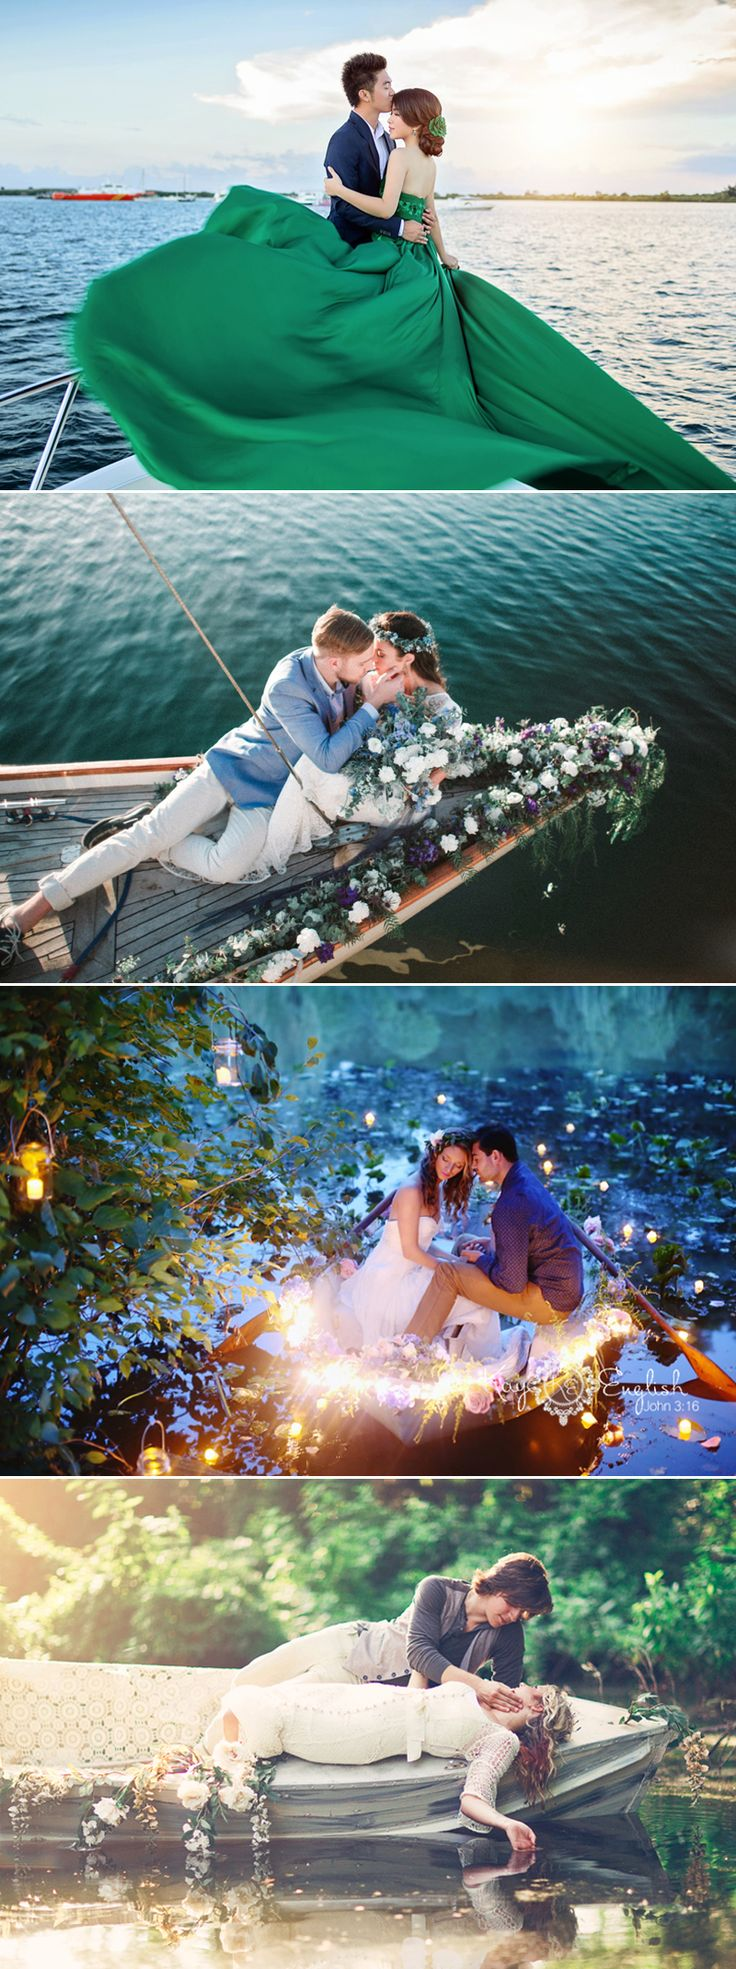 """We hear the term """"love boat"""" all the time, but never imagined how romantic it is to actually have your engagement photos taken on a boat! There is something so peaceful and magical about today's collection of engagement photos. These couples are totally in their own little worlds filled with love and joy, and perhaps …"""